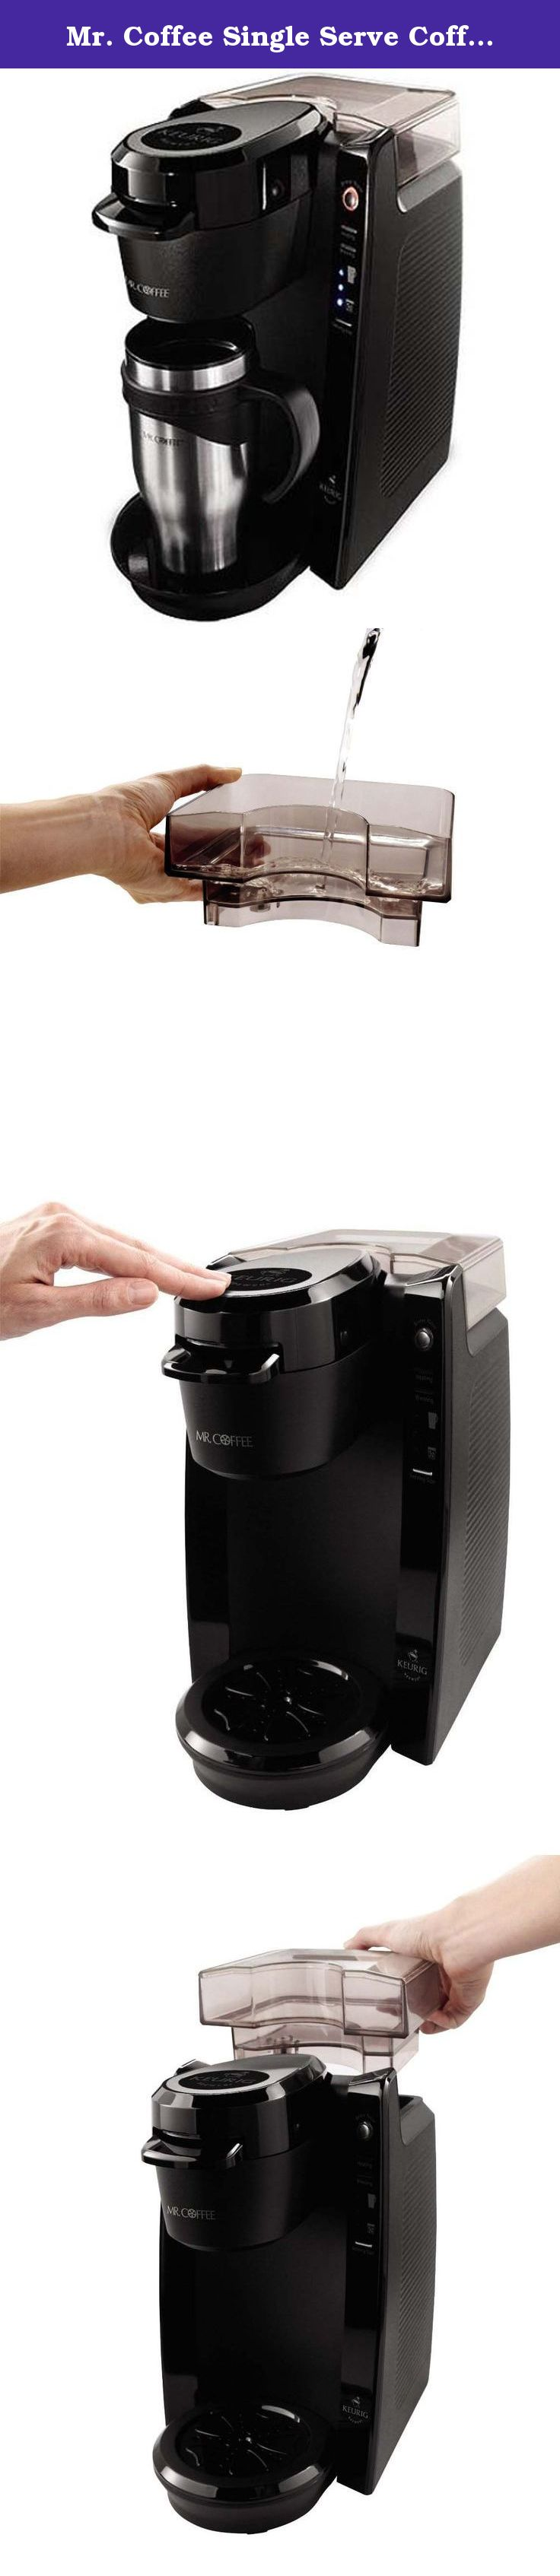 Has your coffee maker ever malfunctioned, overflowing